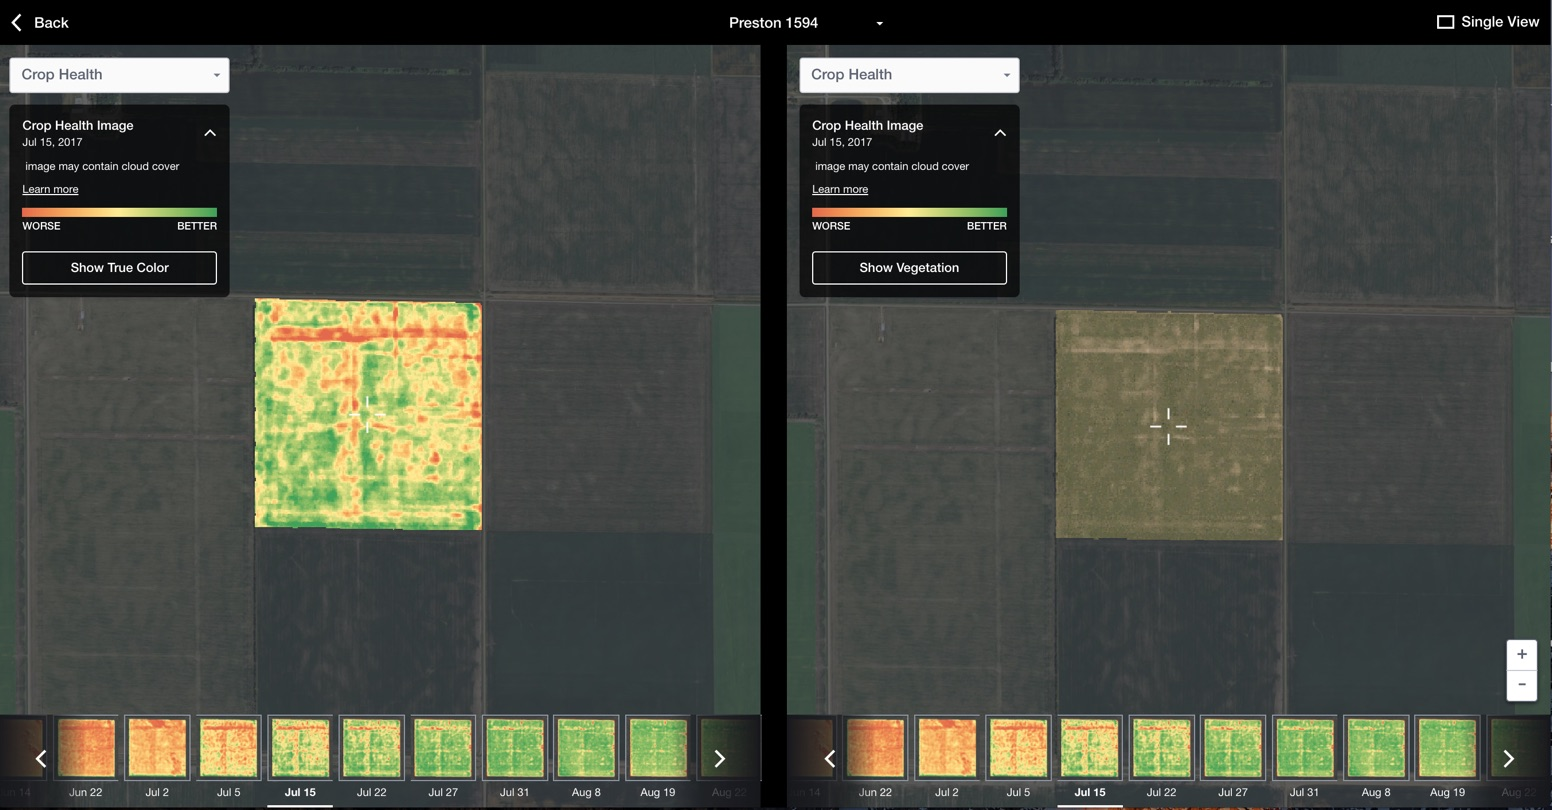 Compare Crop Health Imagery to true color satellite imagery with the Field Data Explorer from FarmLogs